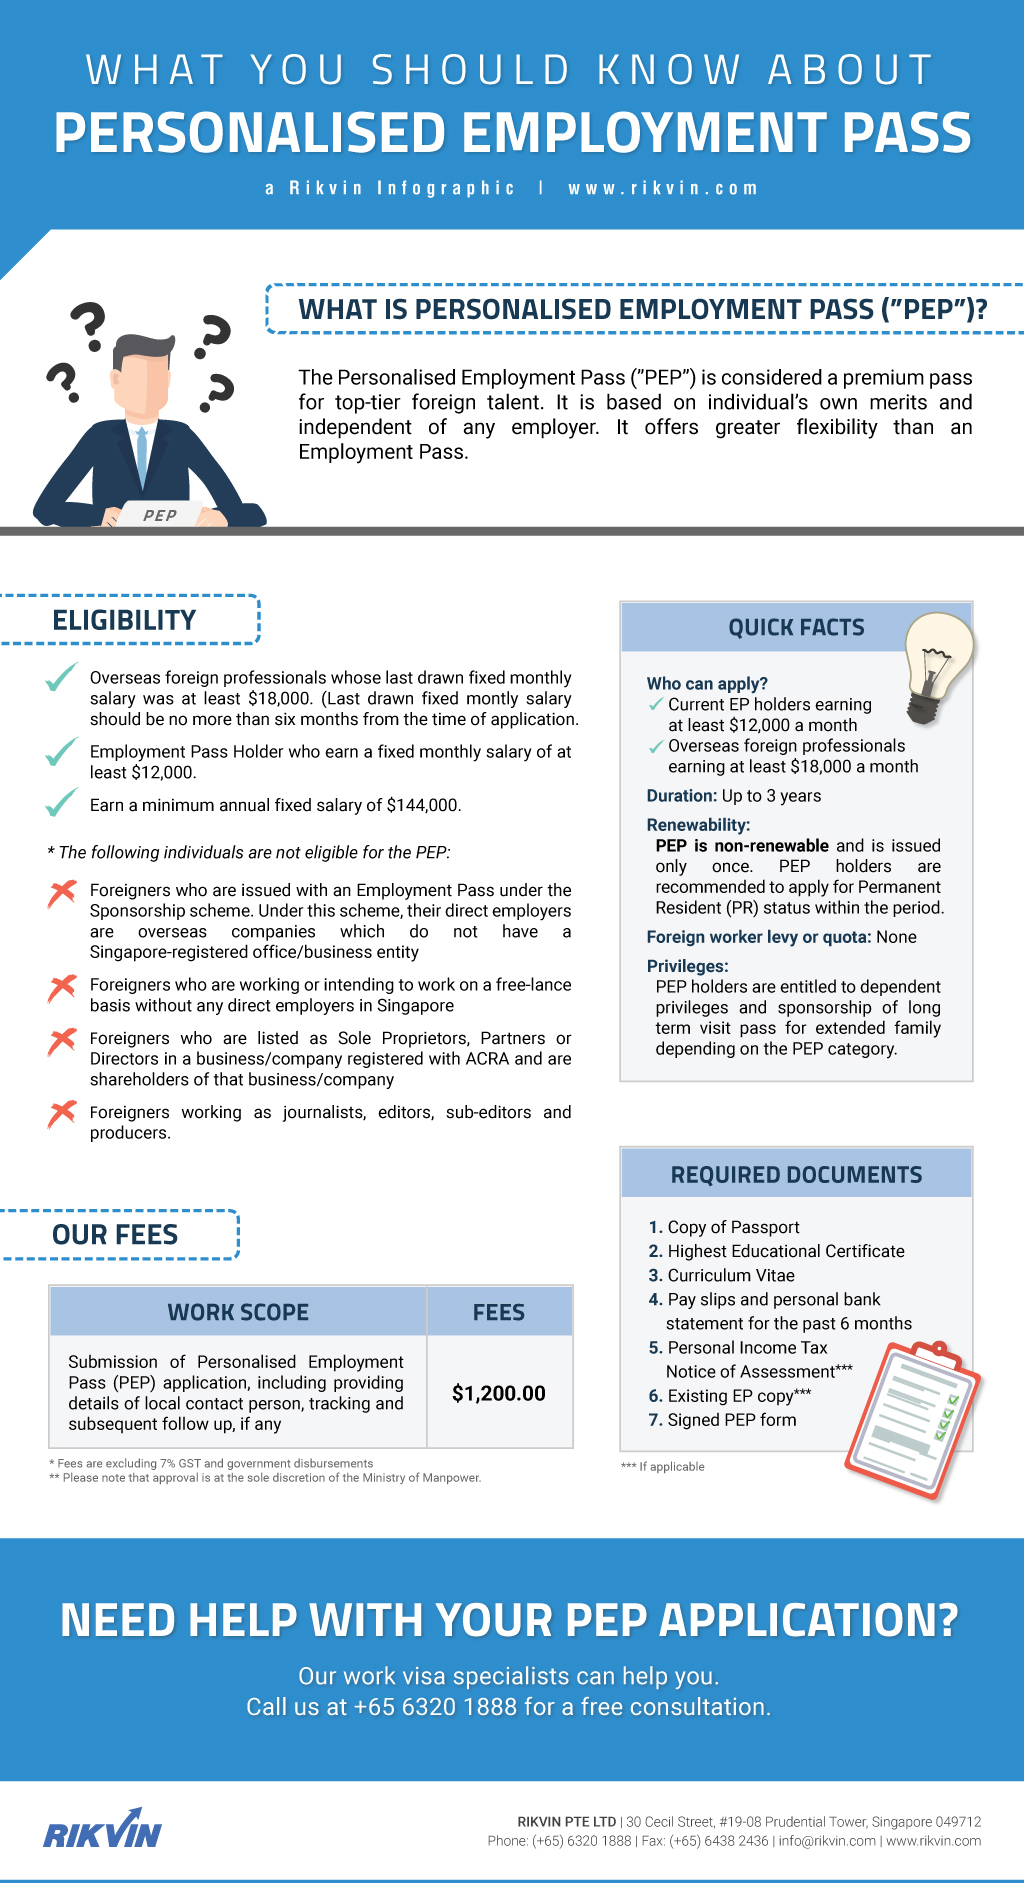 Personalised_Employment_Pass-Rikvin_Infographic What You Should Know About Personalised Employment Pass